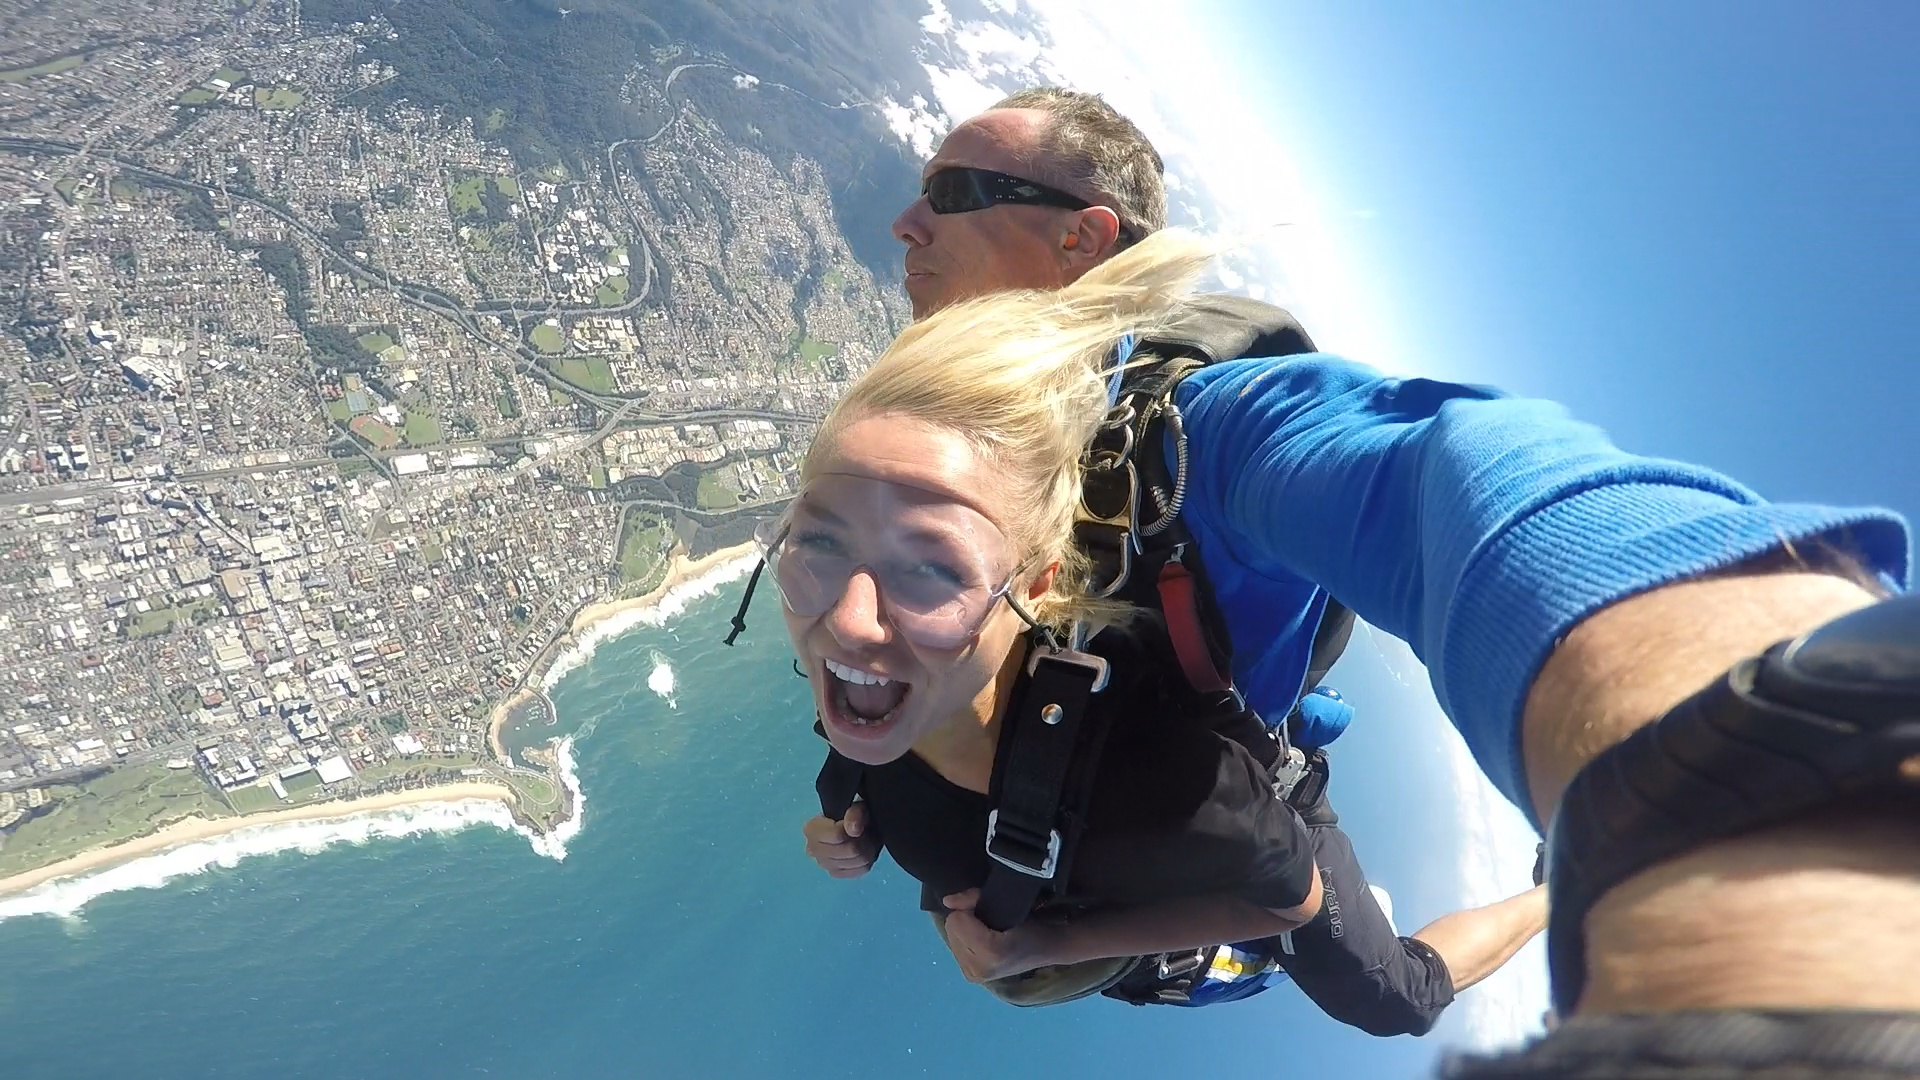 Amazing views during my skydive